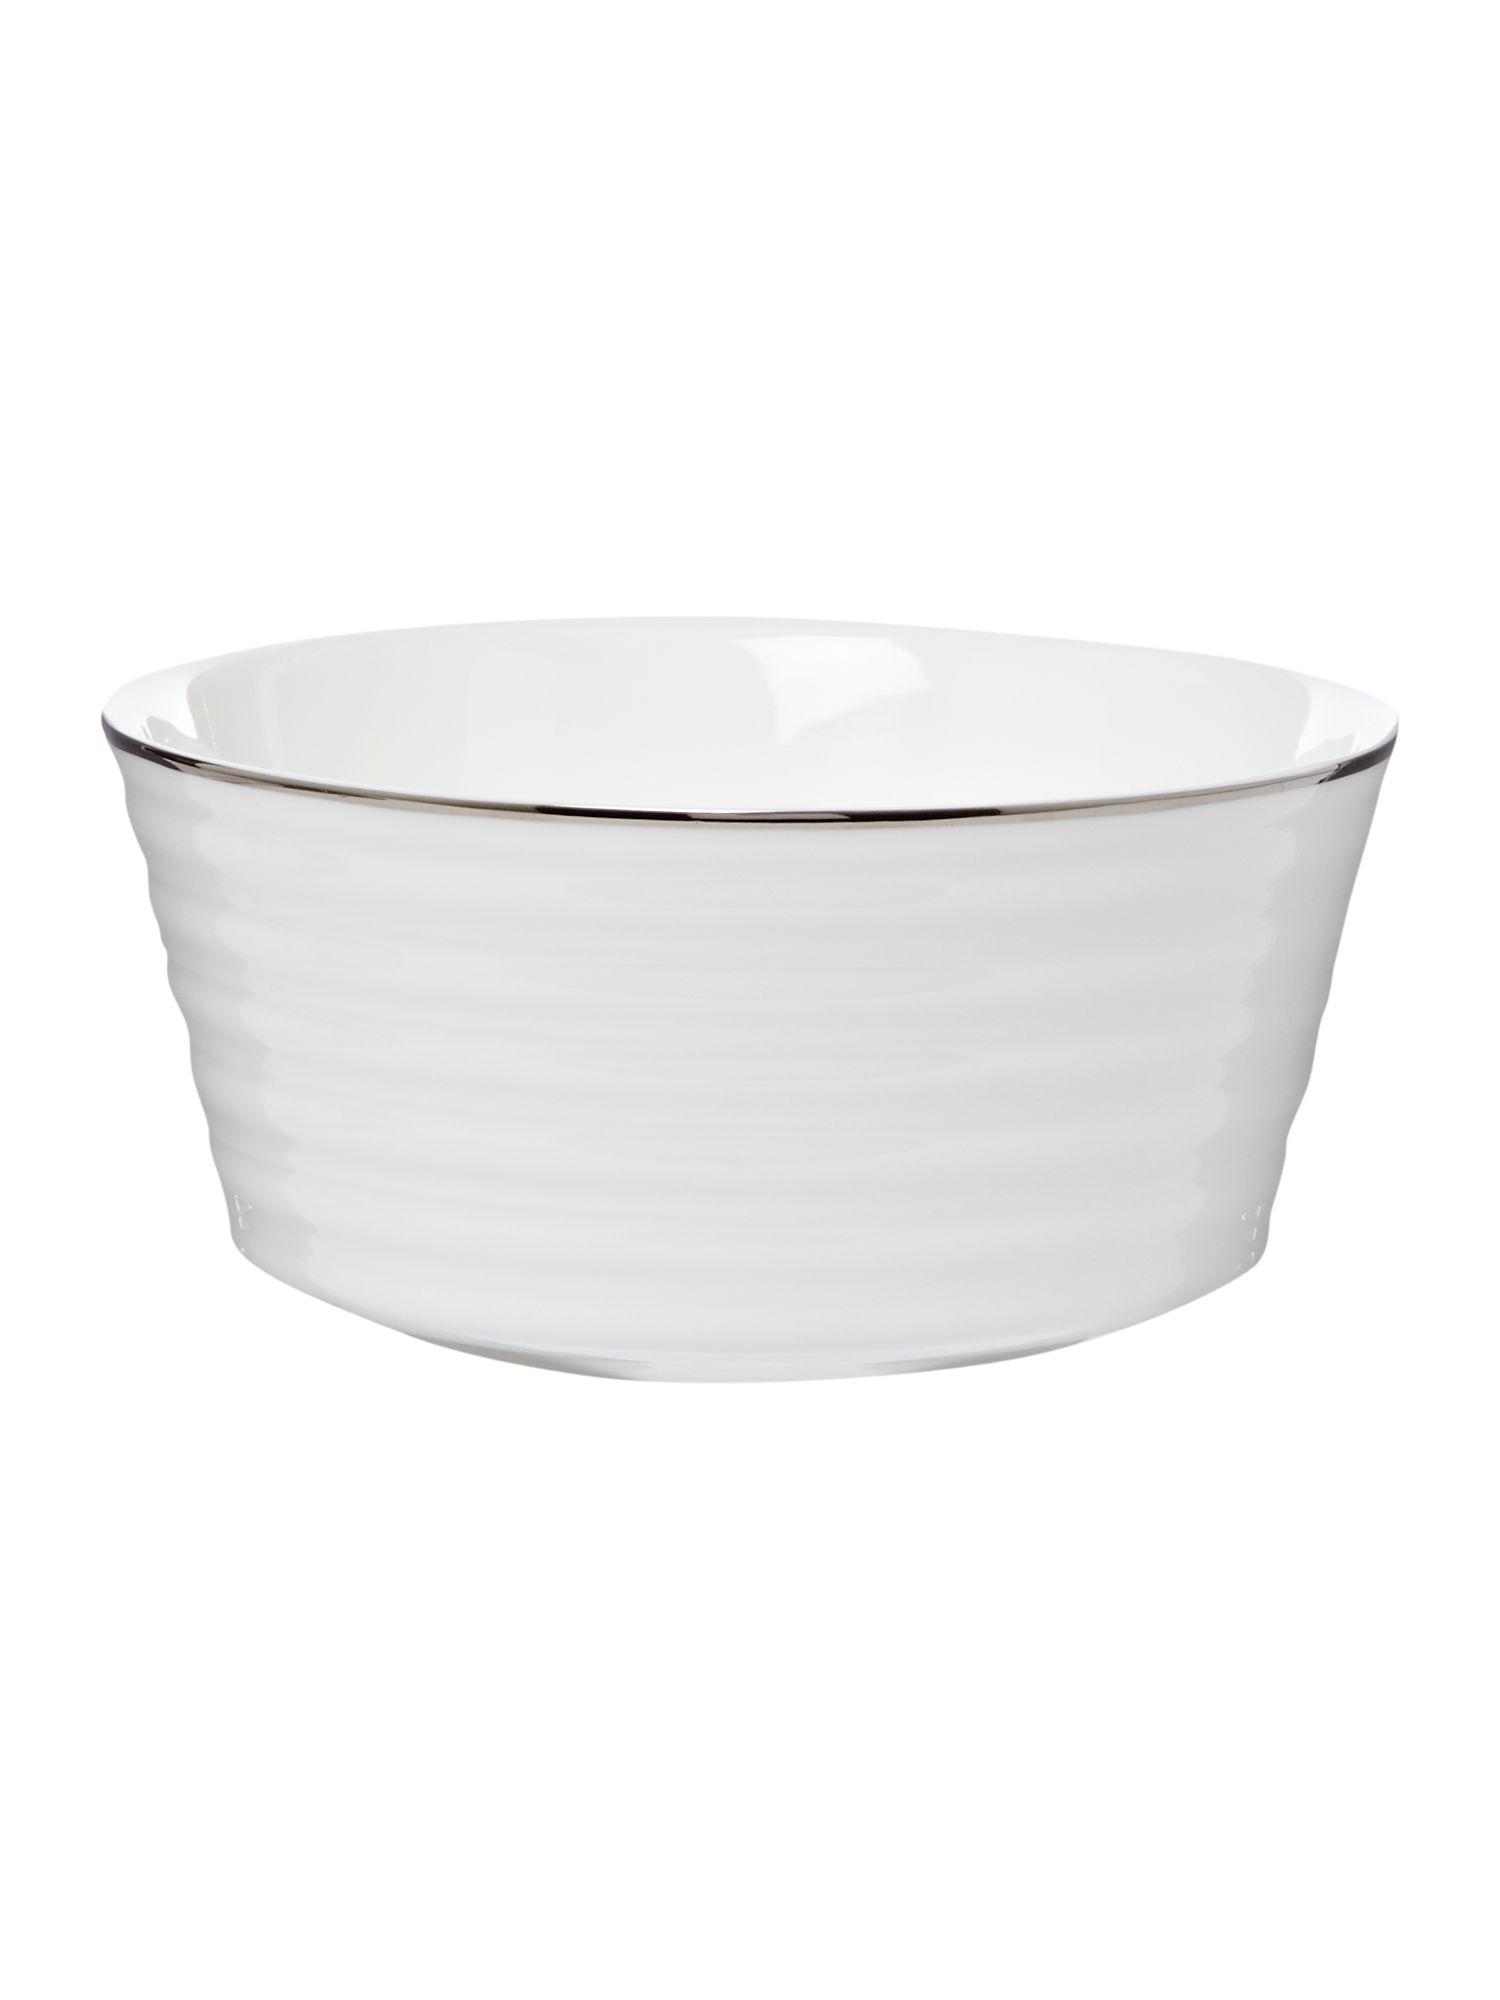 Soho platinum cereal bowl